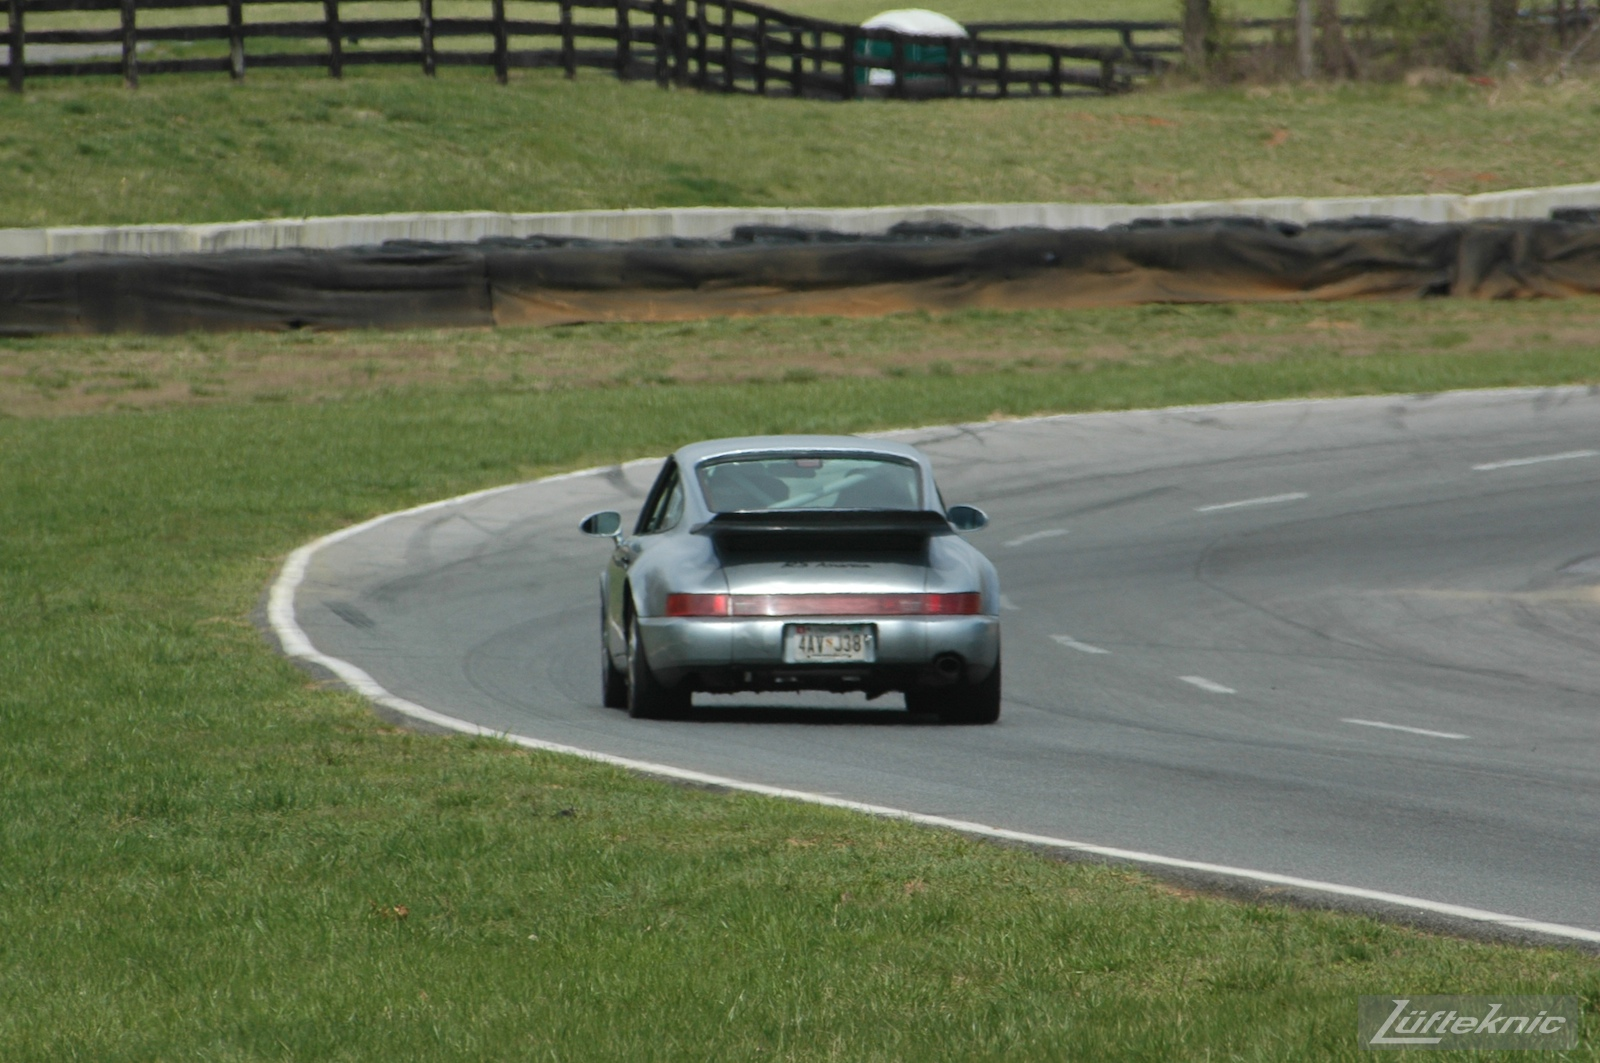 The 964 RS America on track for the first time after the accident, going down the hill at Summit Point